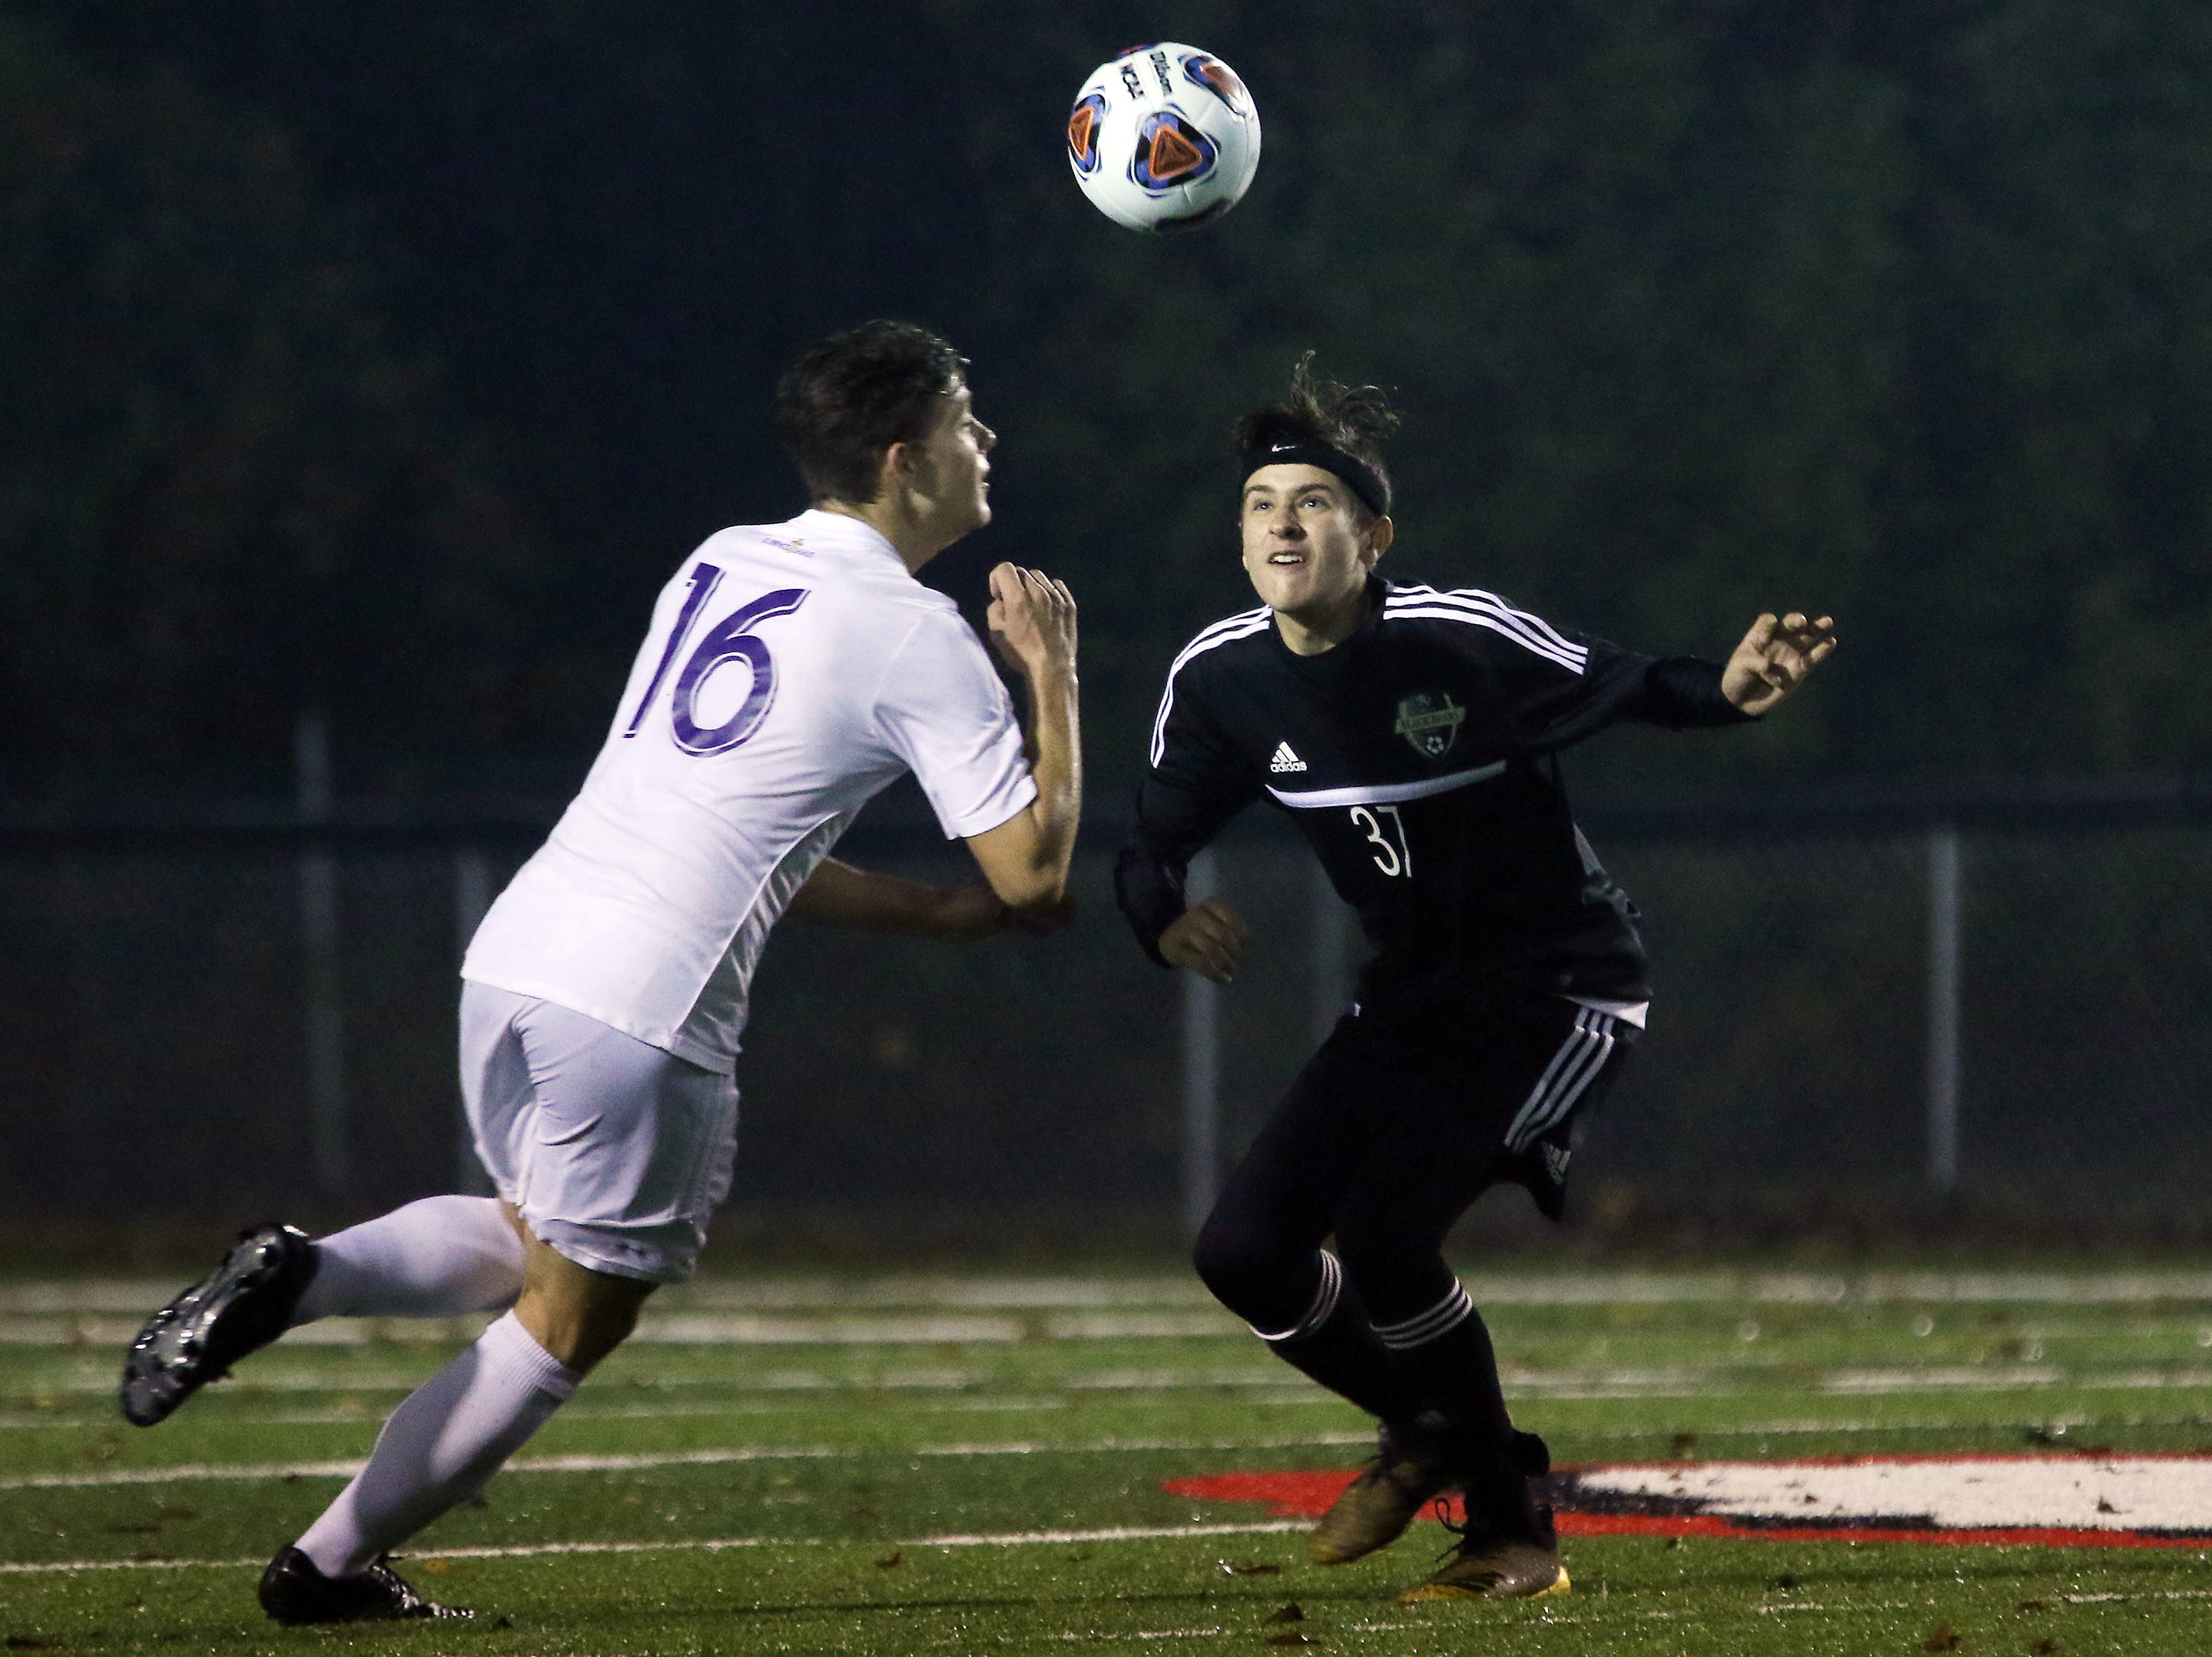 River View's Andrew Ireland and DeSales' Josh Conroy close in on the ball.